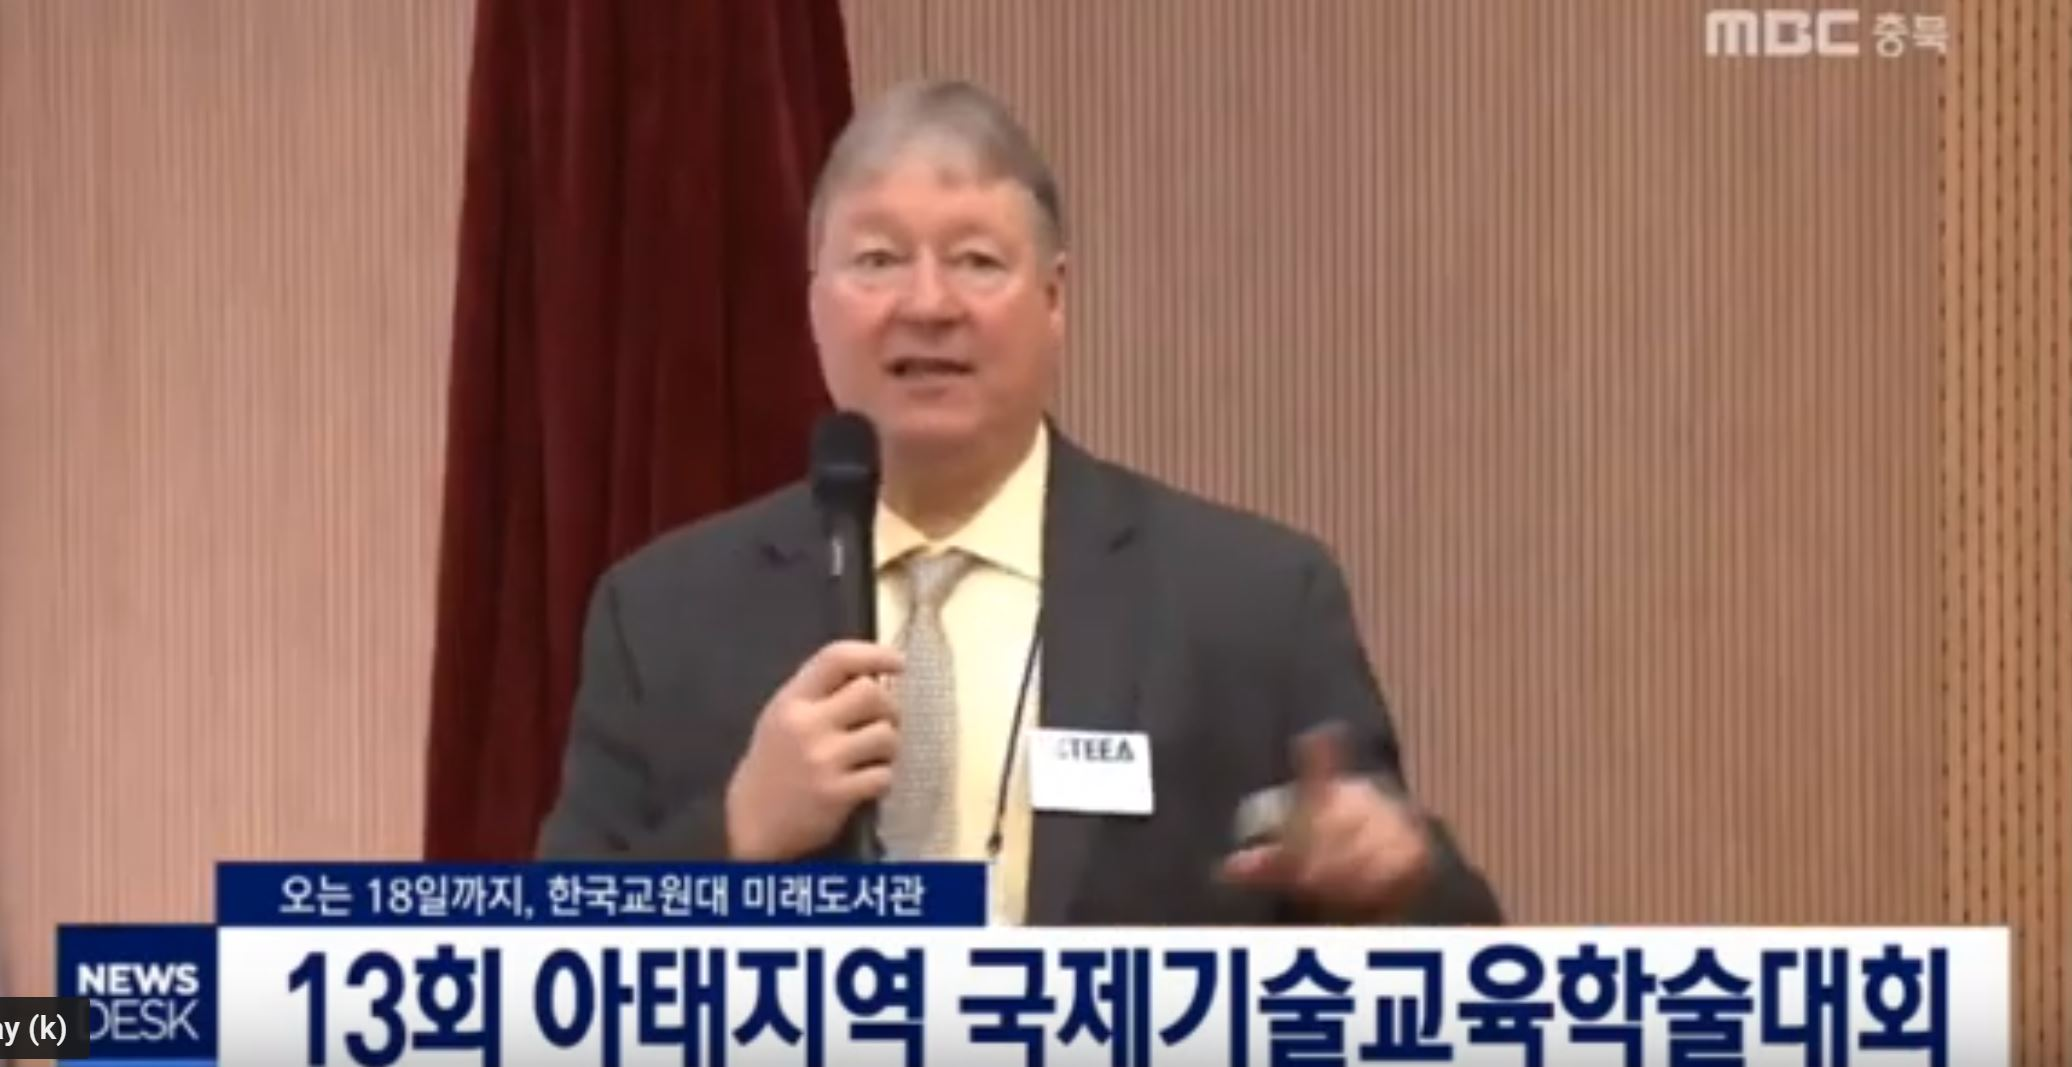 ITEEA Past-President featured on South Korean News